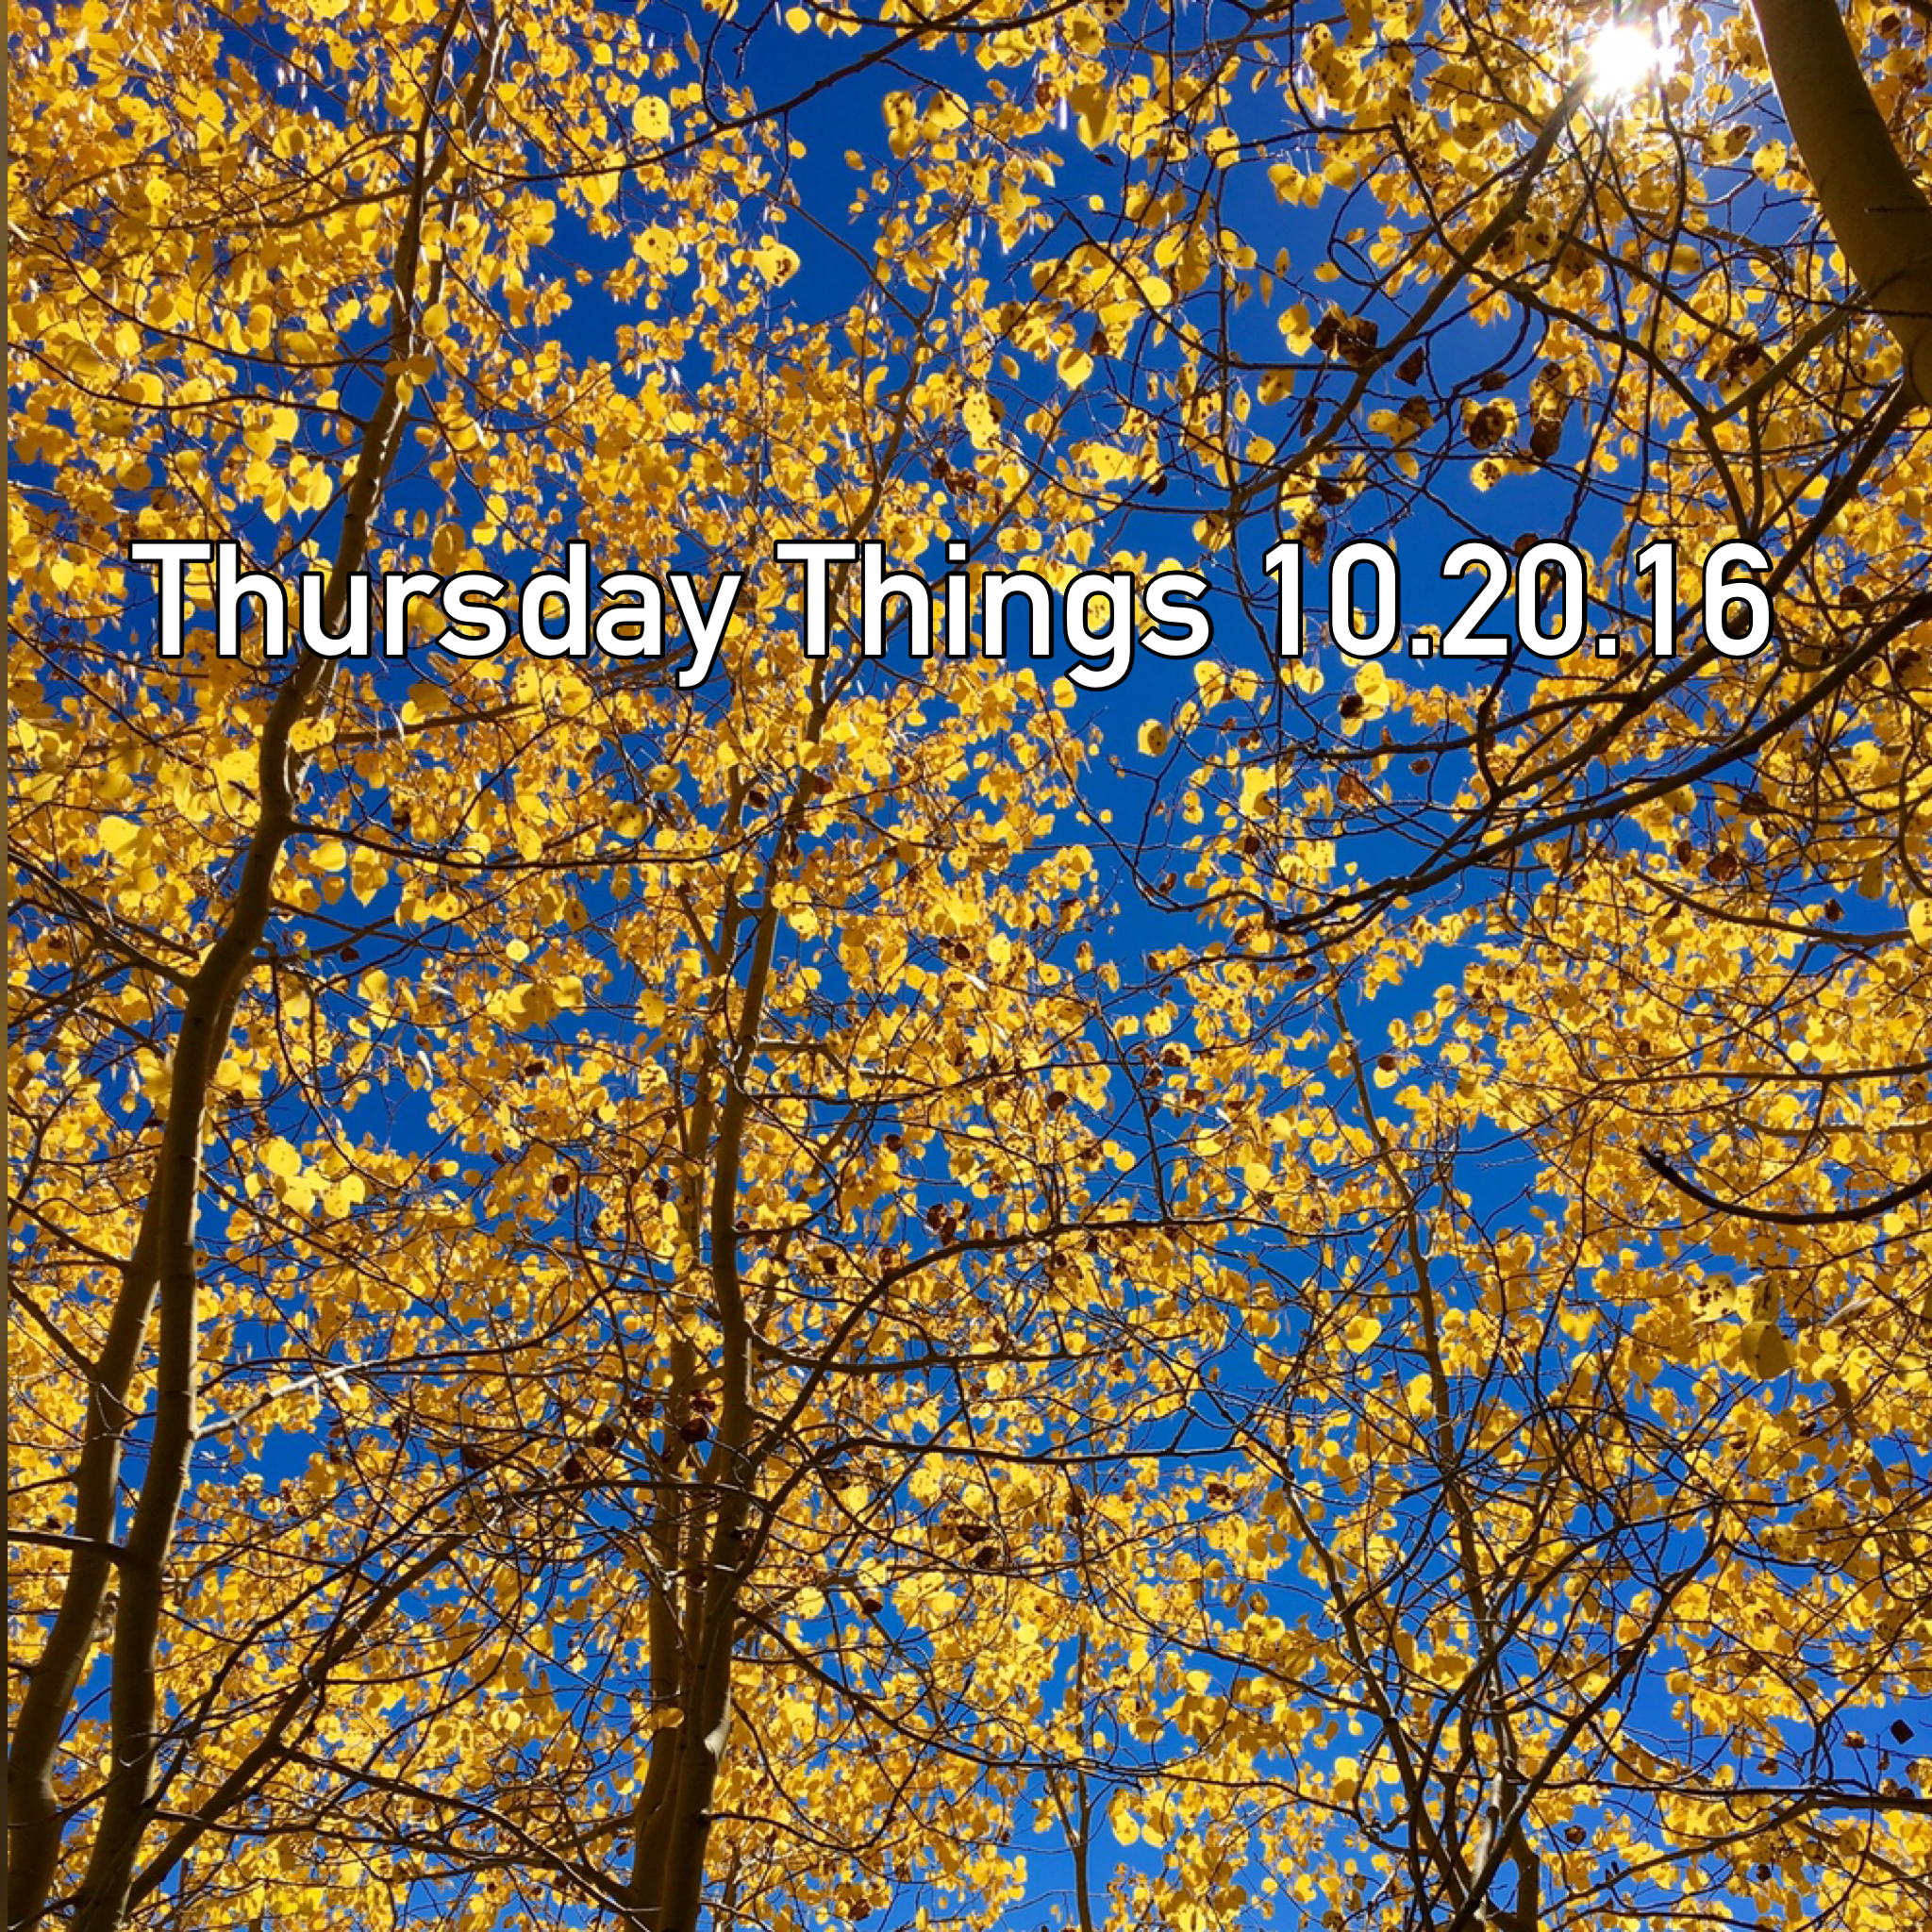 Thursday Things 10.20.16